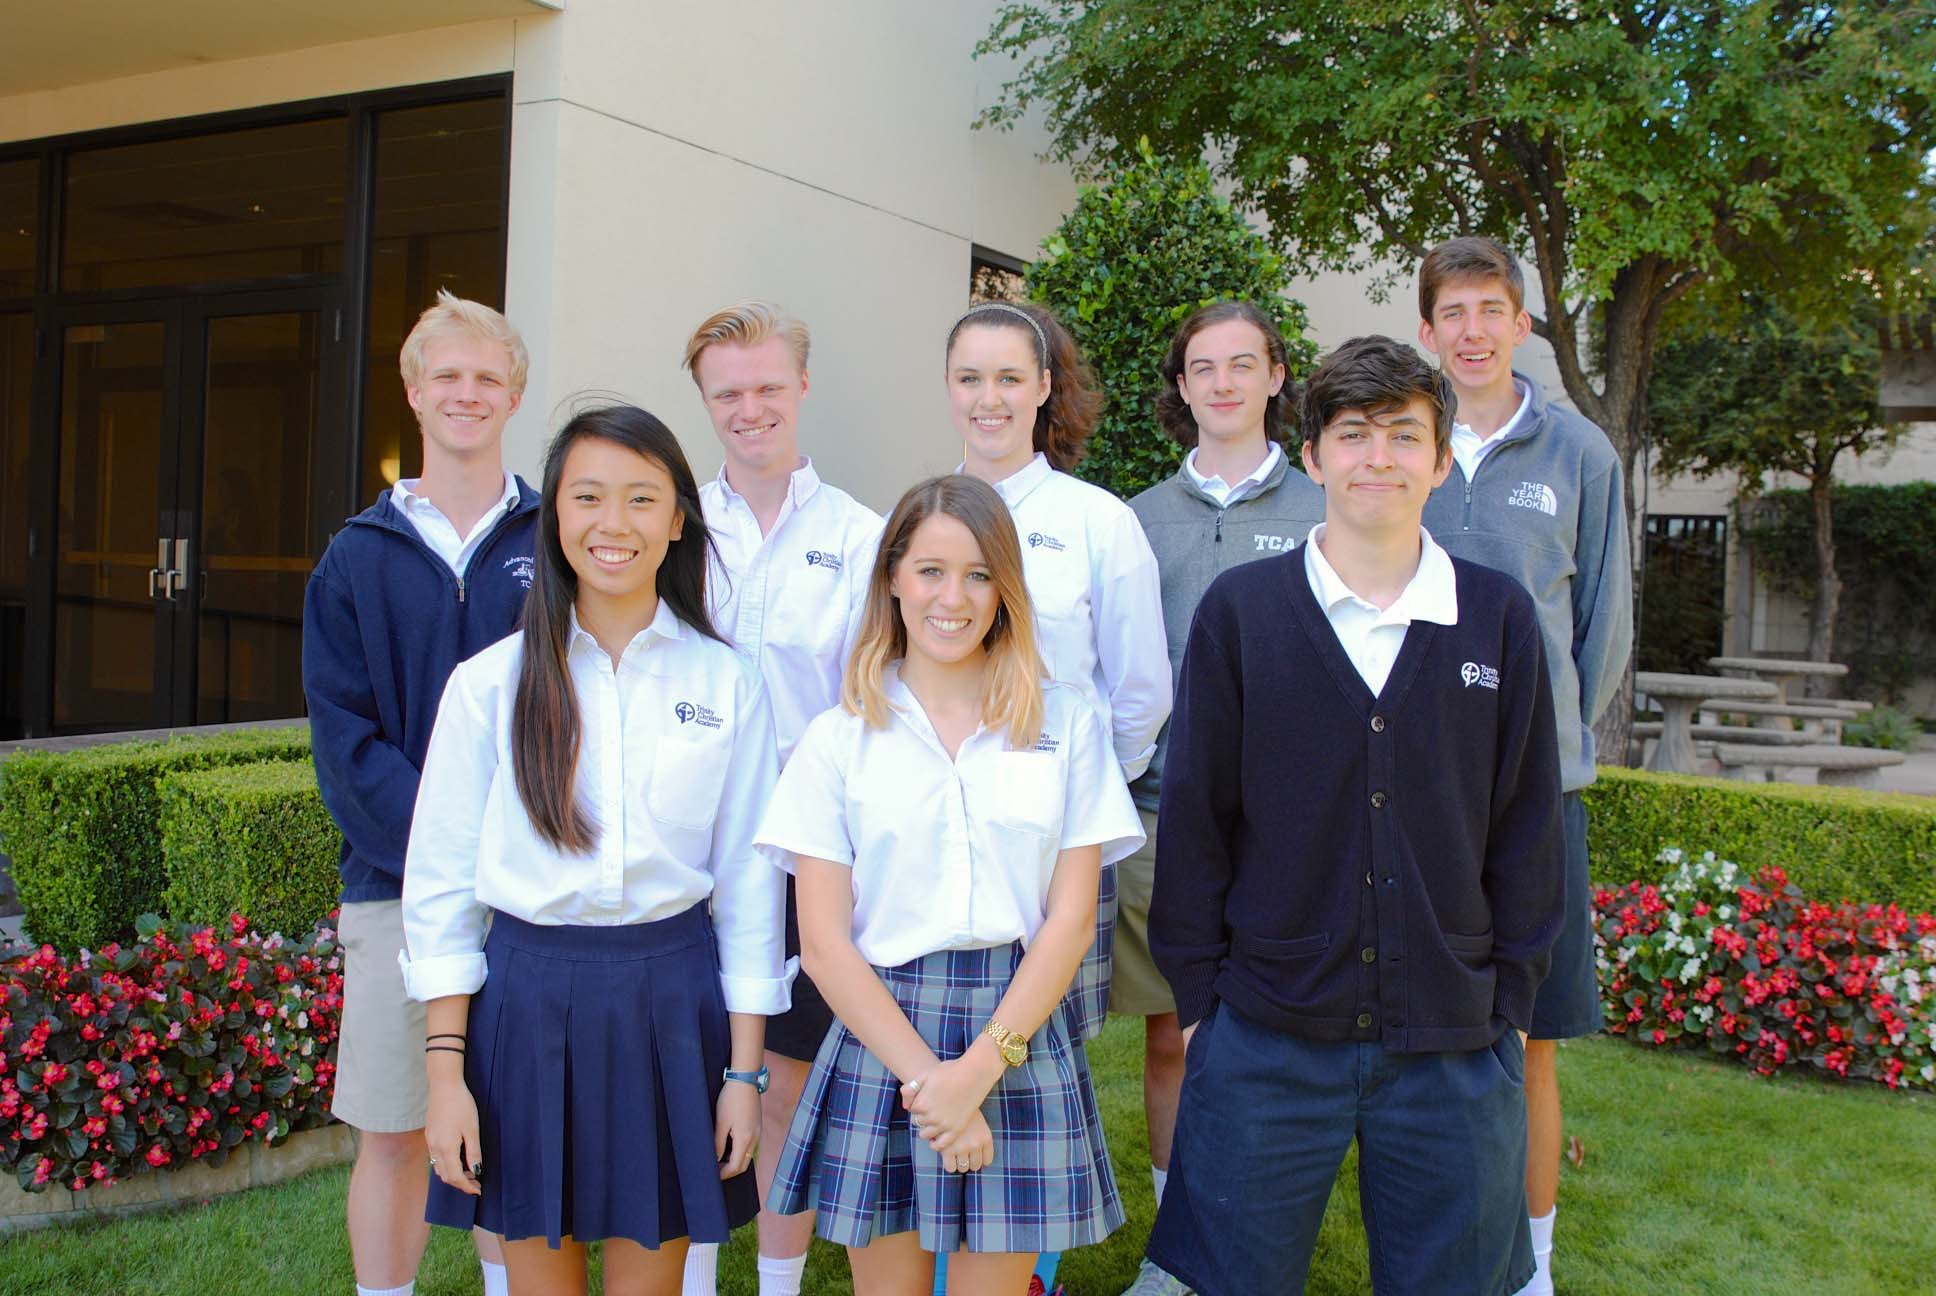 seniors from trinity christian academy d in national merit national merit award students courtesy of trinity christian academy